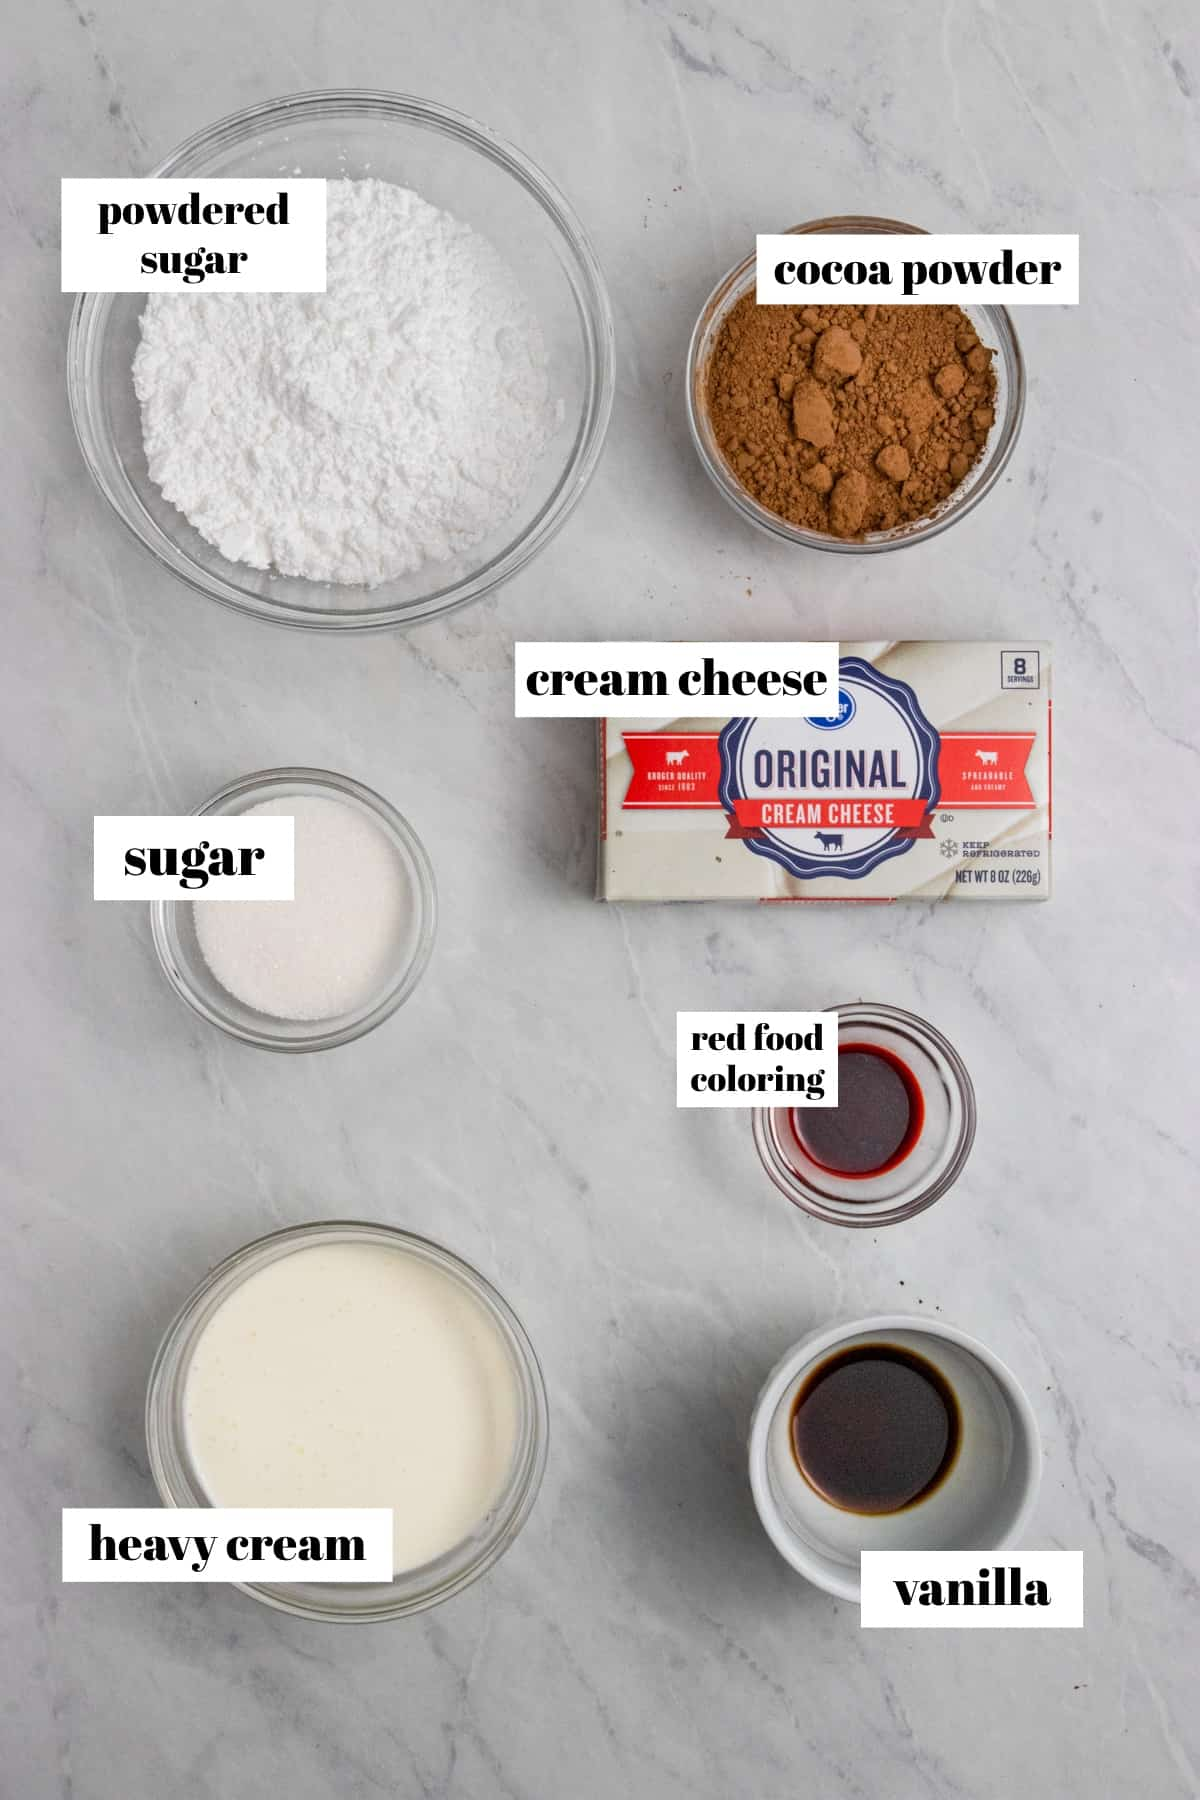 Cream cheese, powdered sugar, cocoa powder and other ingredients labeled on counter.